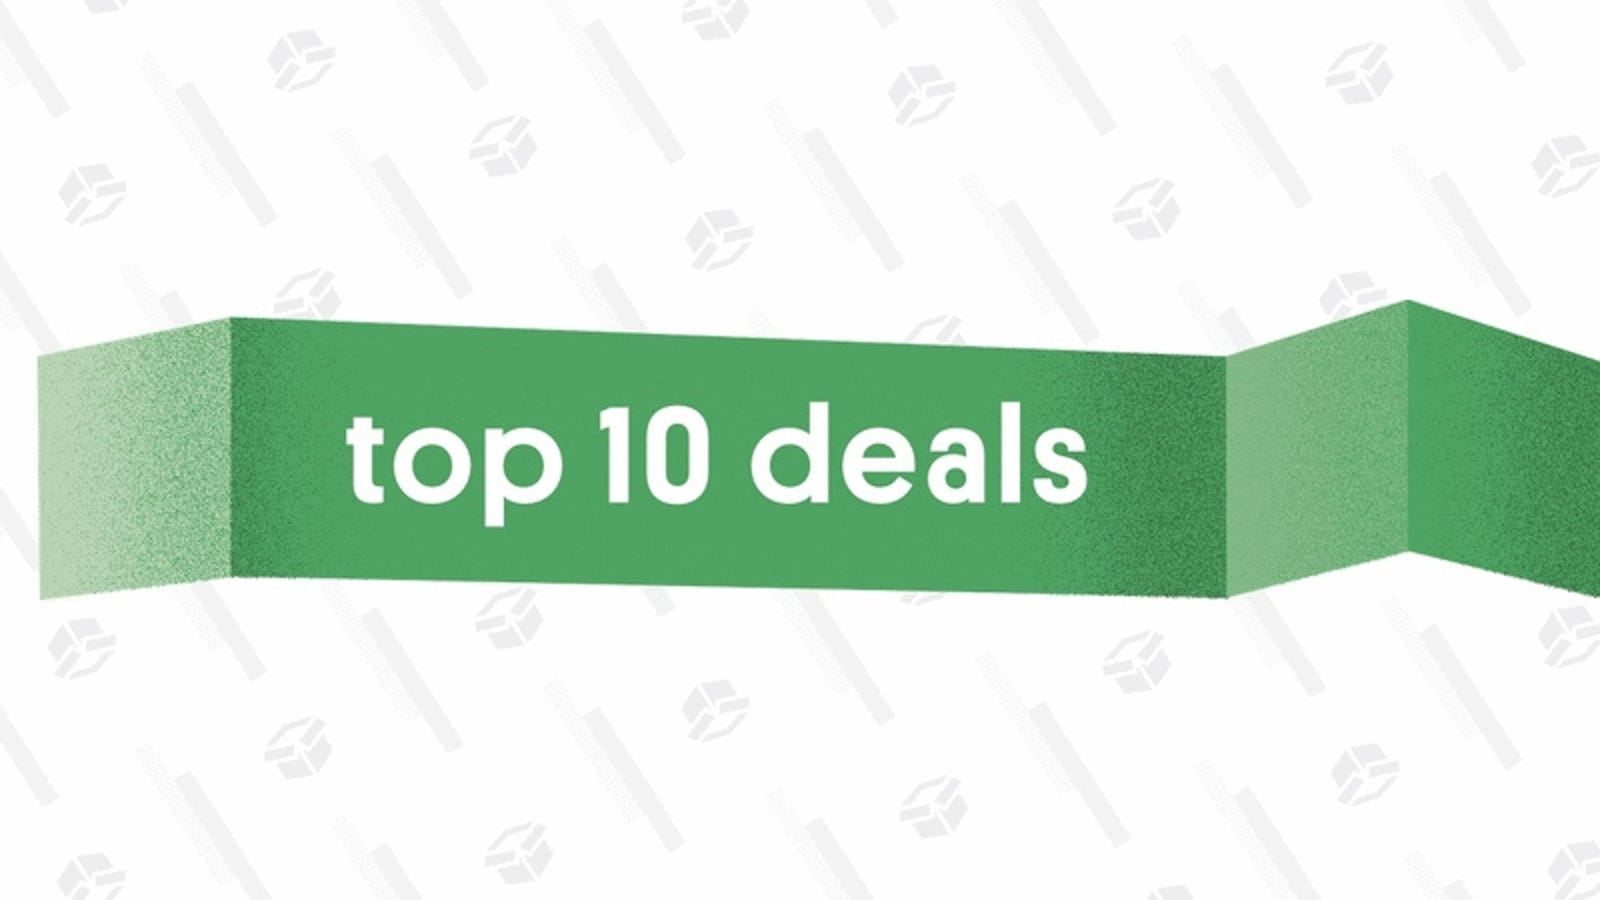 QnA VBage The 10 Best Deals of January 22, 2019